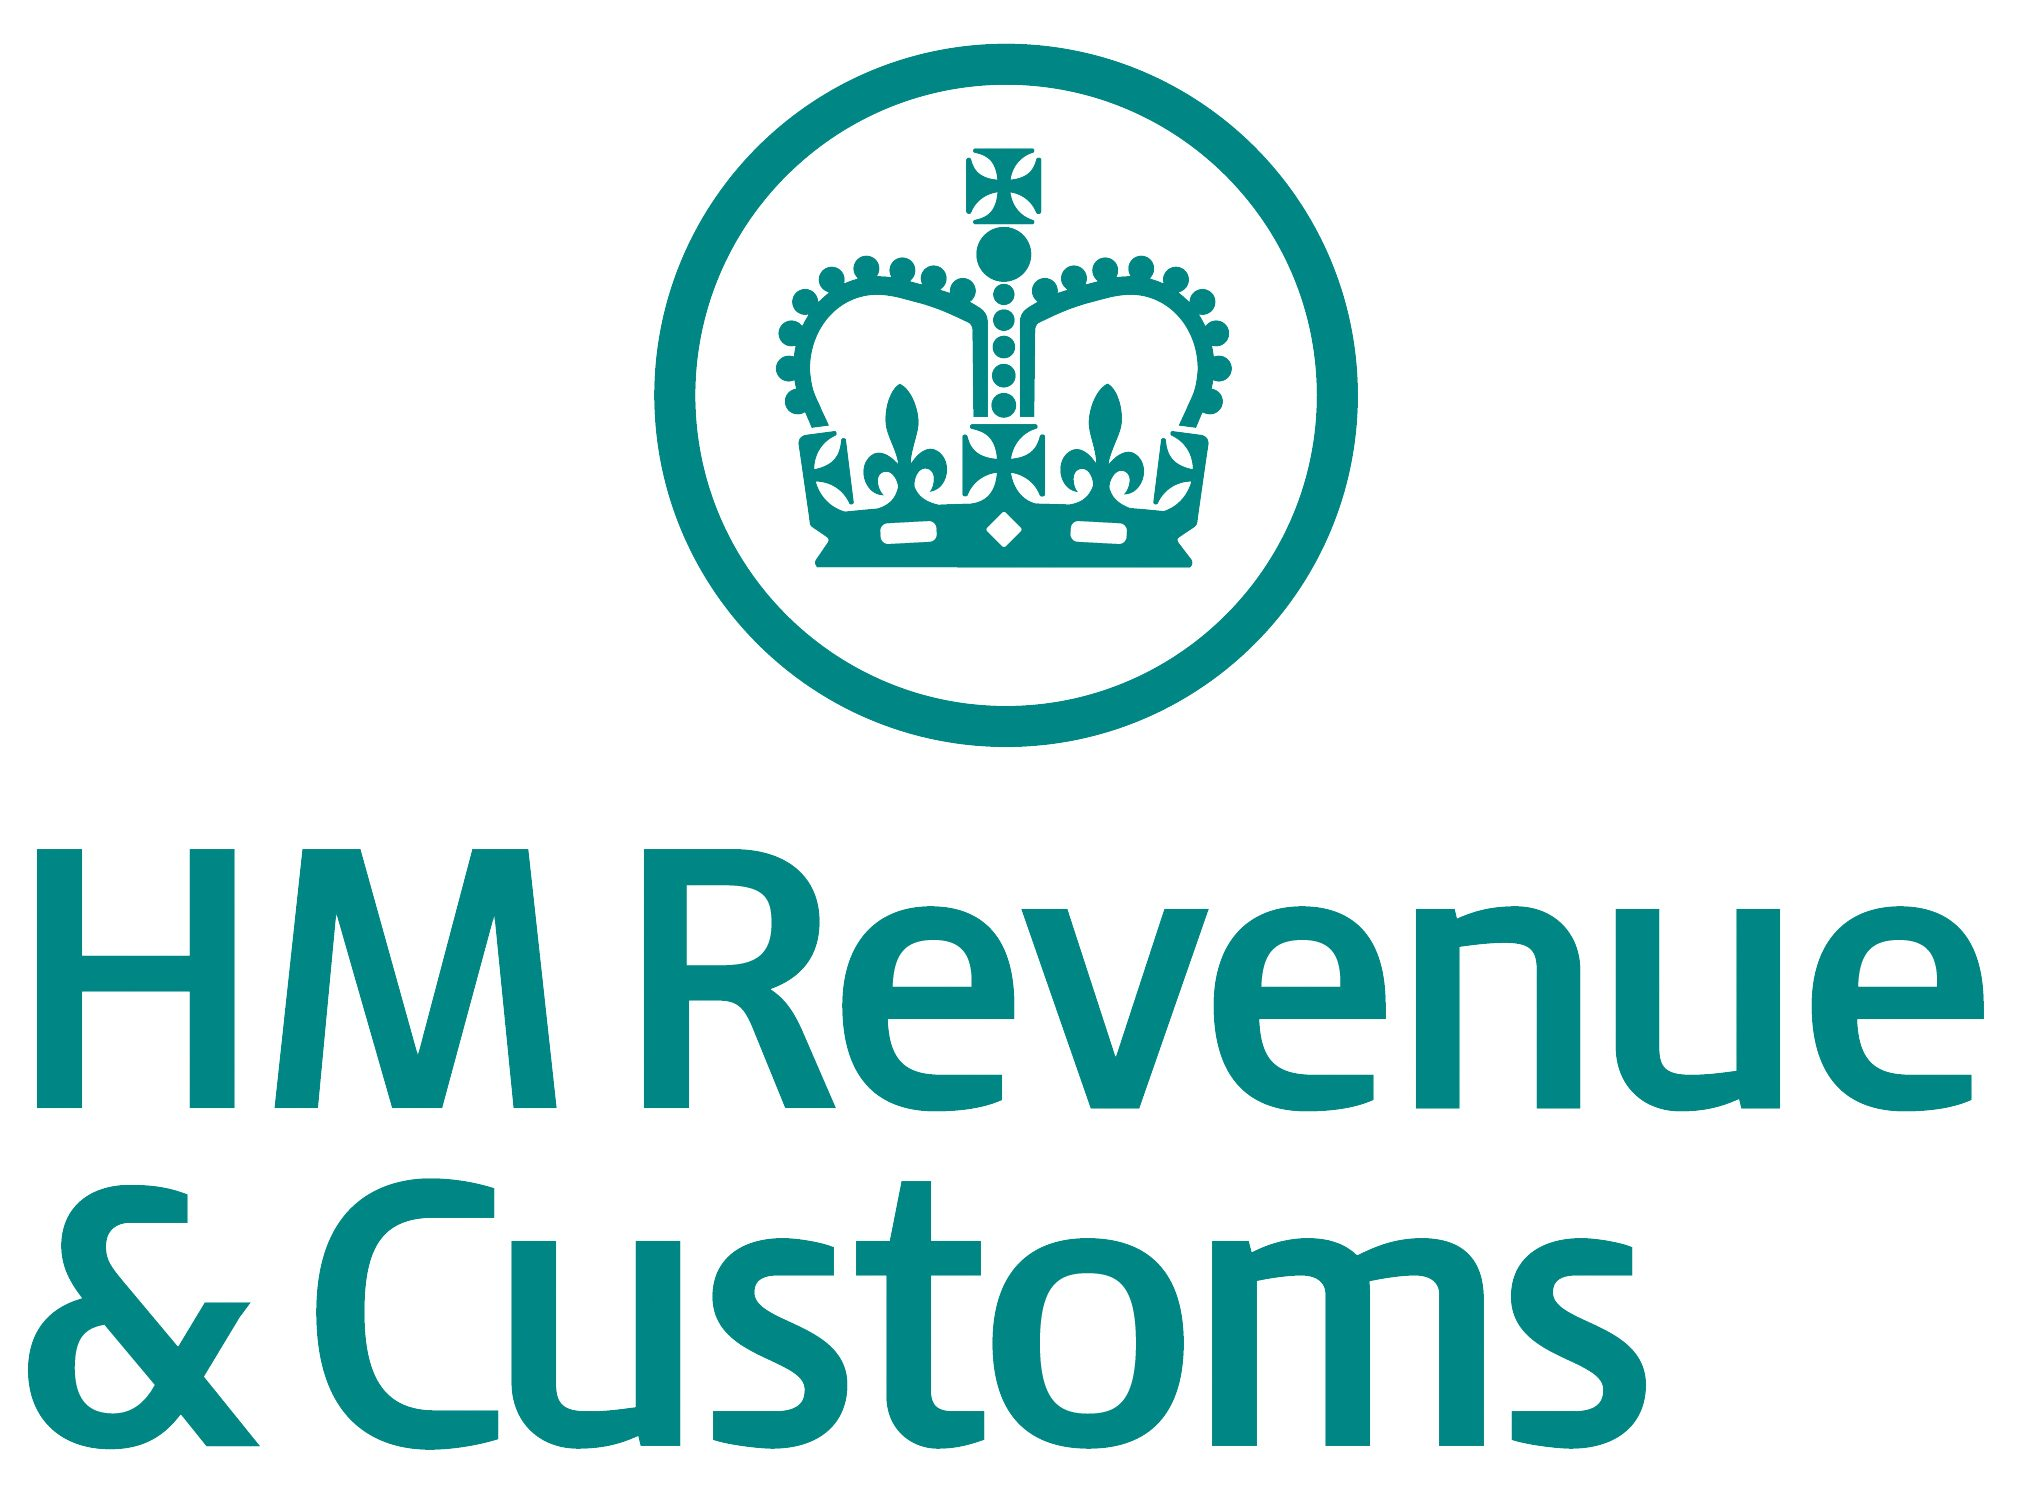 HMRC Customer Service